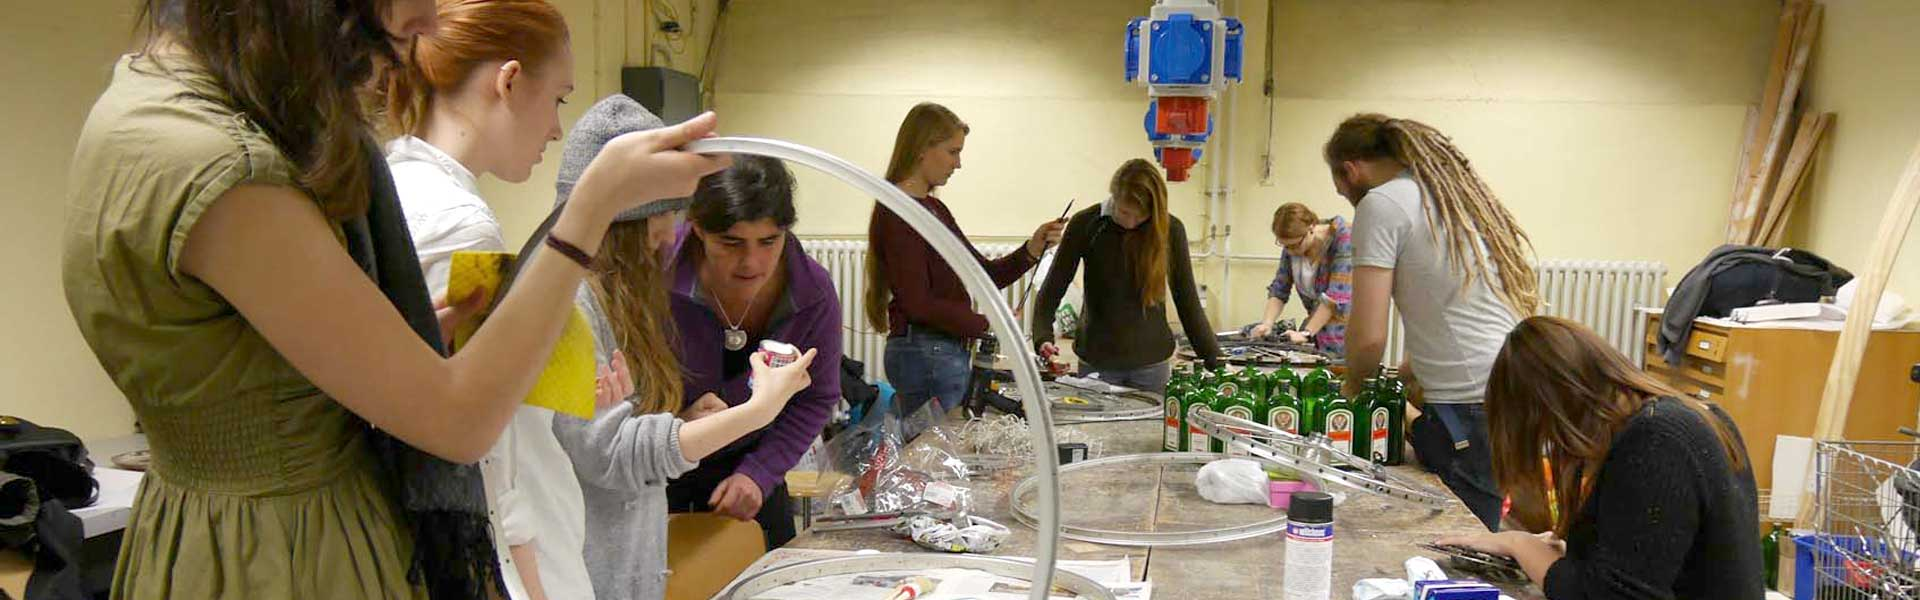 Cyc-Loop Upcycling Workshops